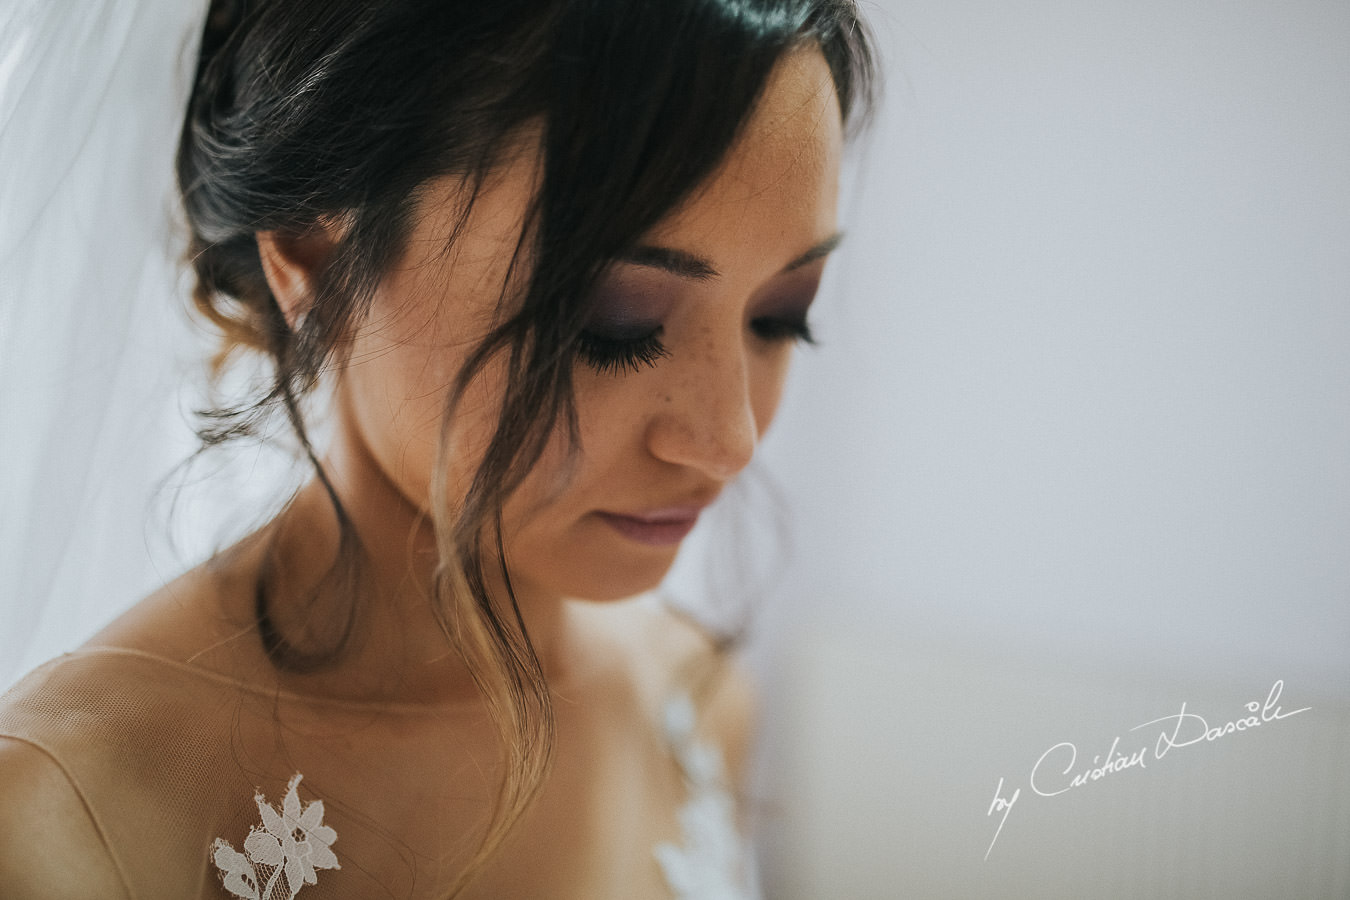 The bride Christina, getting ready for her traditional Cypriot ceremony, moments captured during a wedding at St Raphael Resort in Limassol, Cyprus.